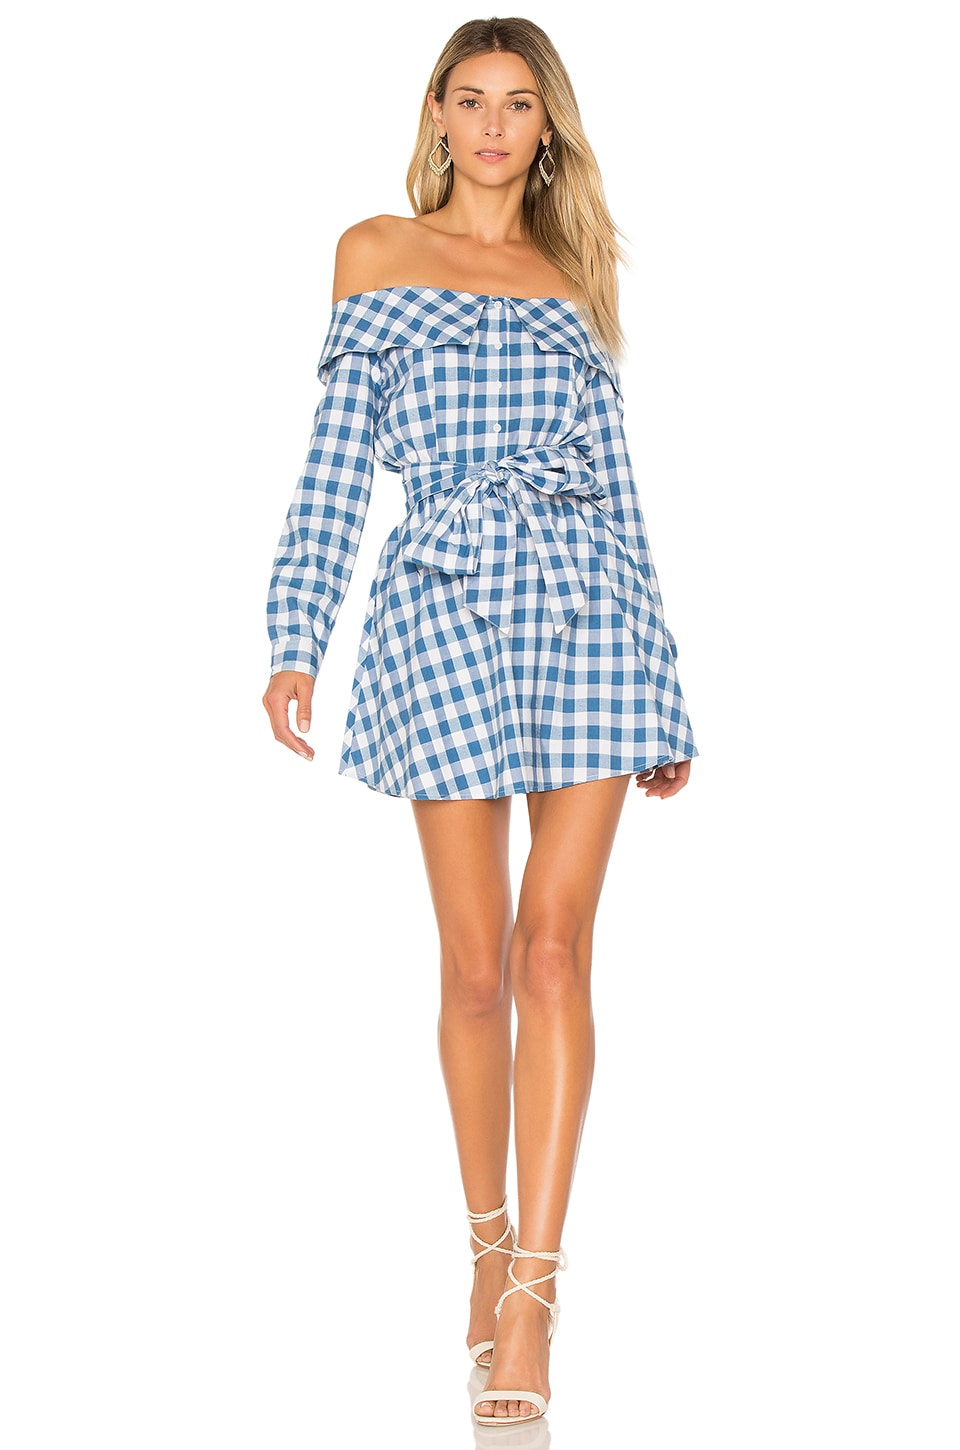 L'Academie X REVOLVE Jann Button Up Dress in Light Blue Gingham